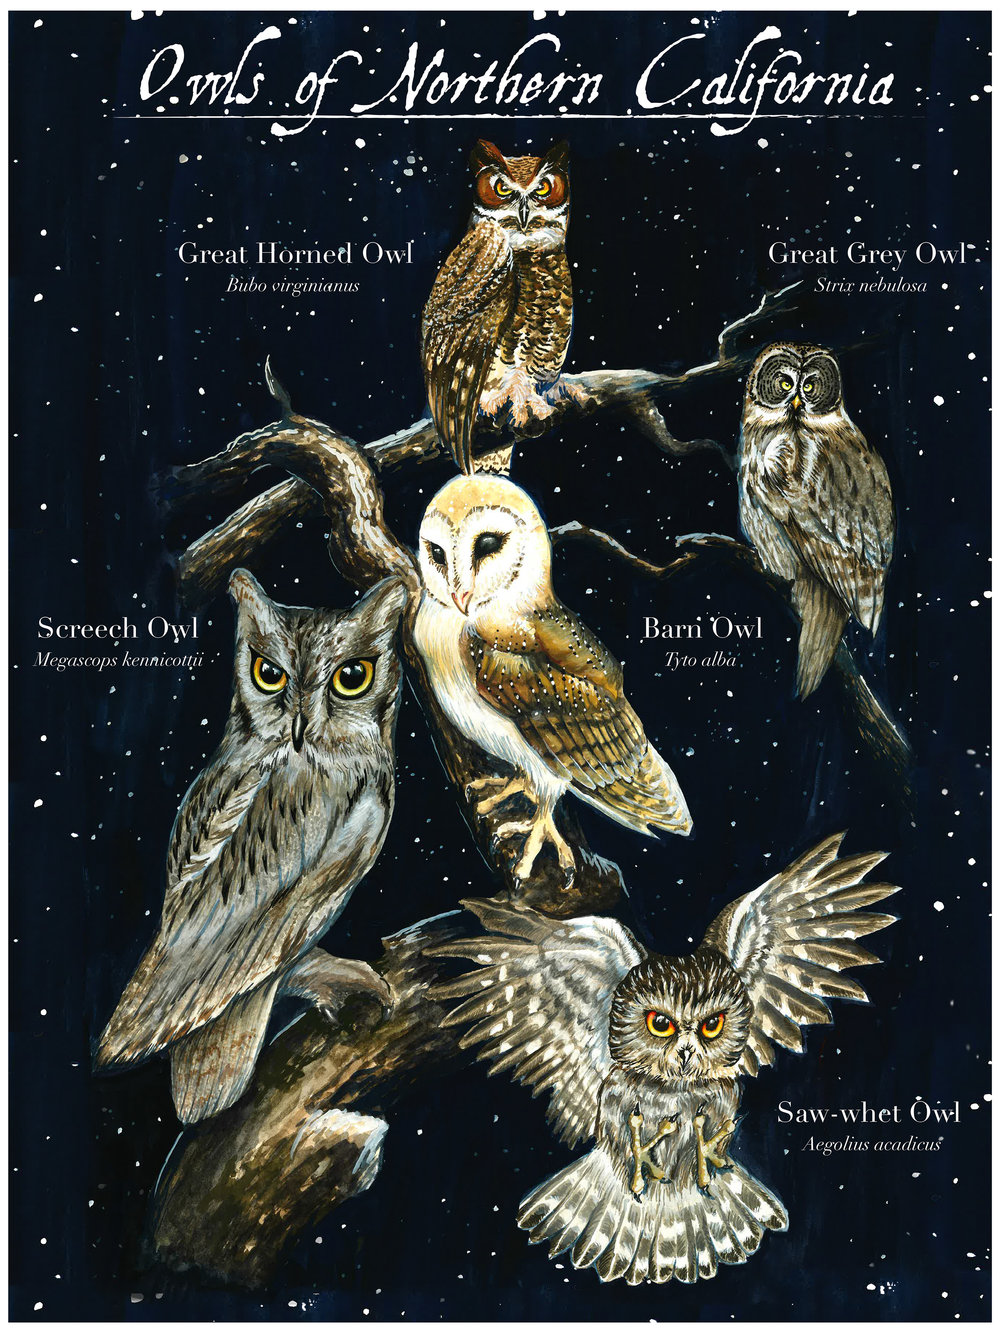 Owls of Northern California